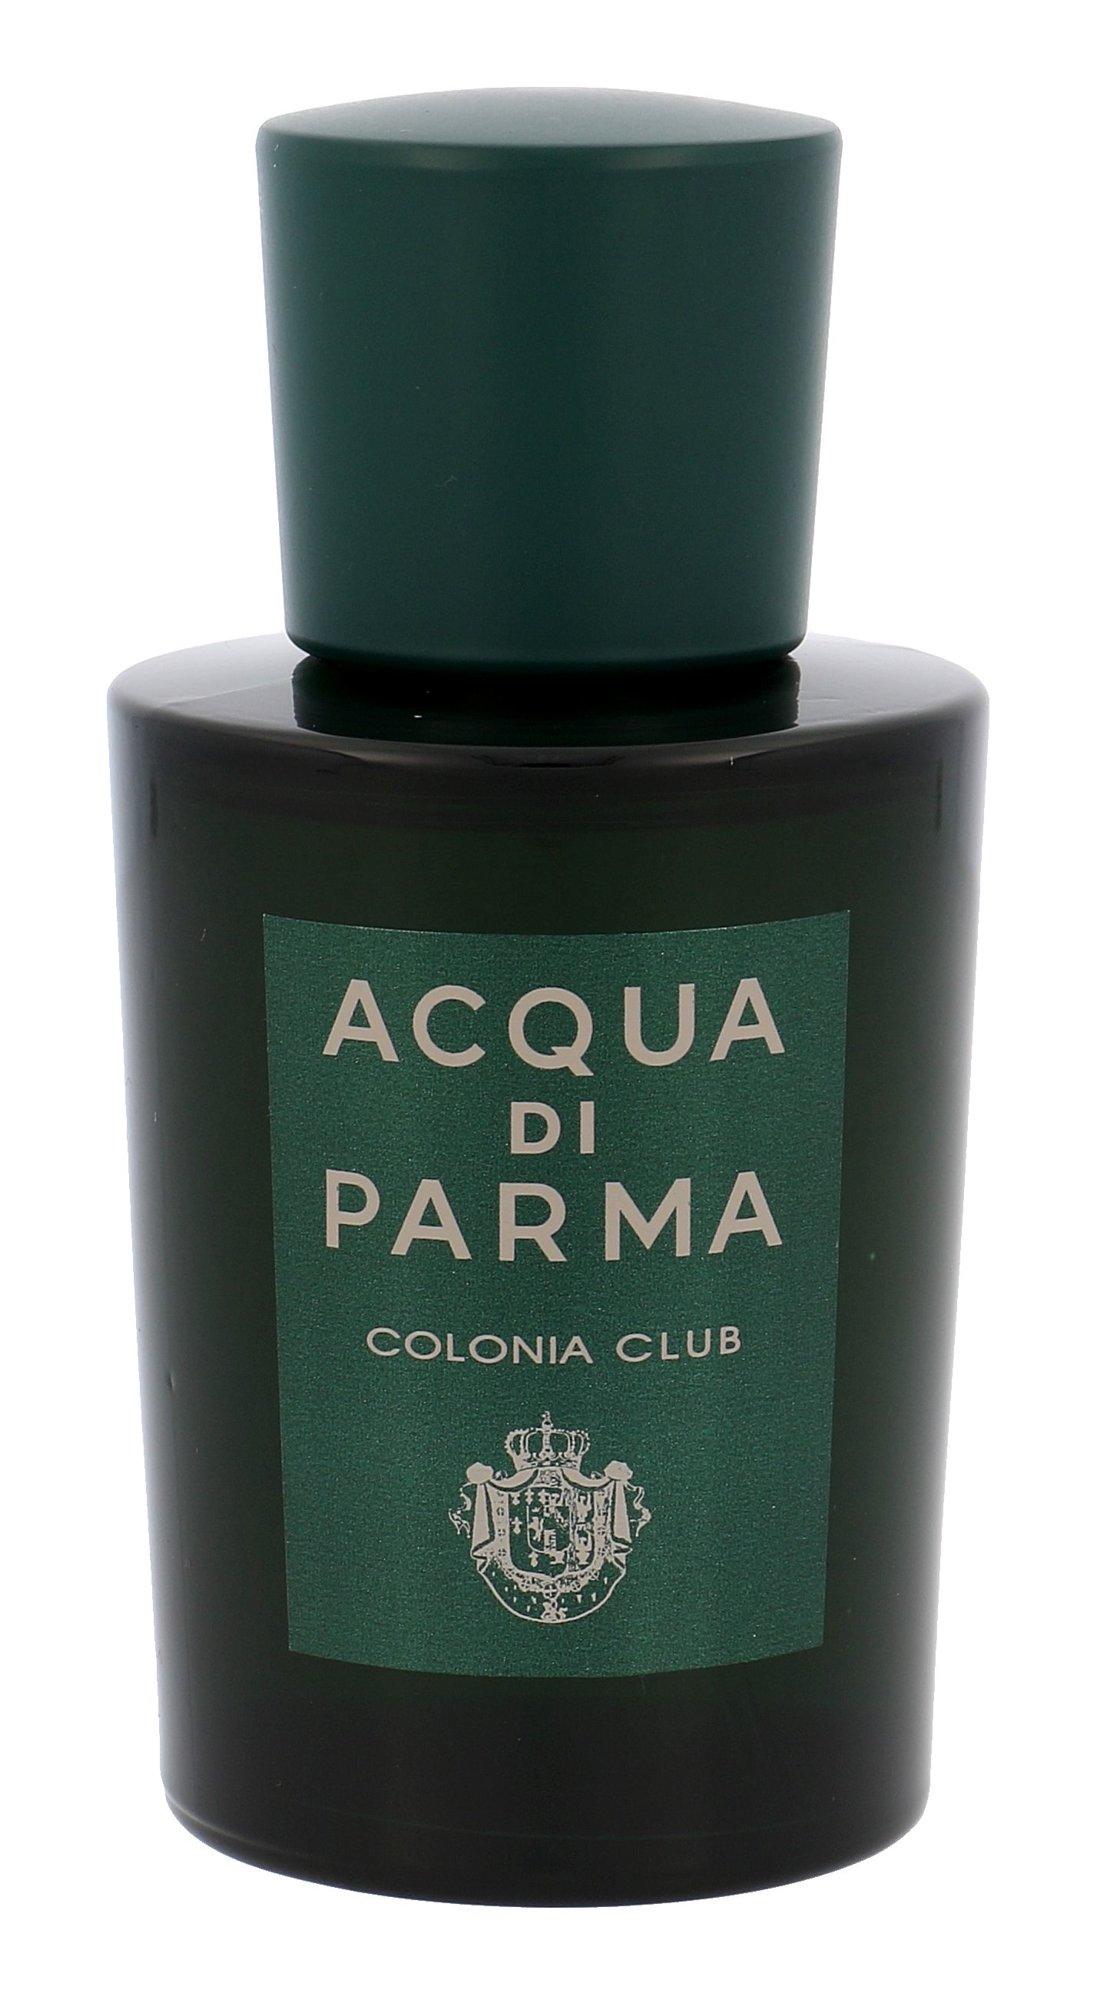 Acqua di Parma Colonia Club Cologne 50ml